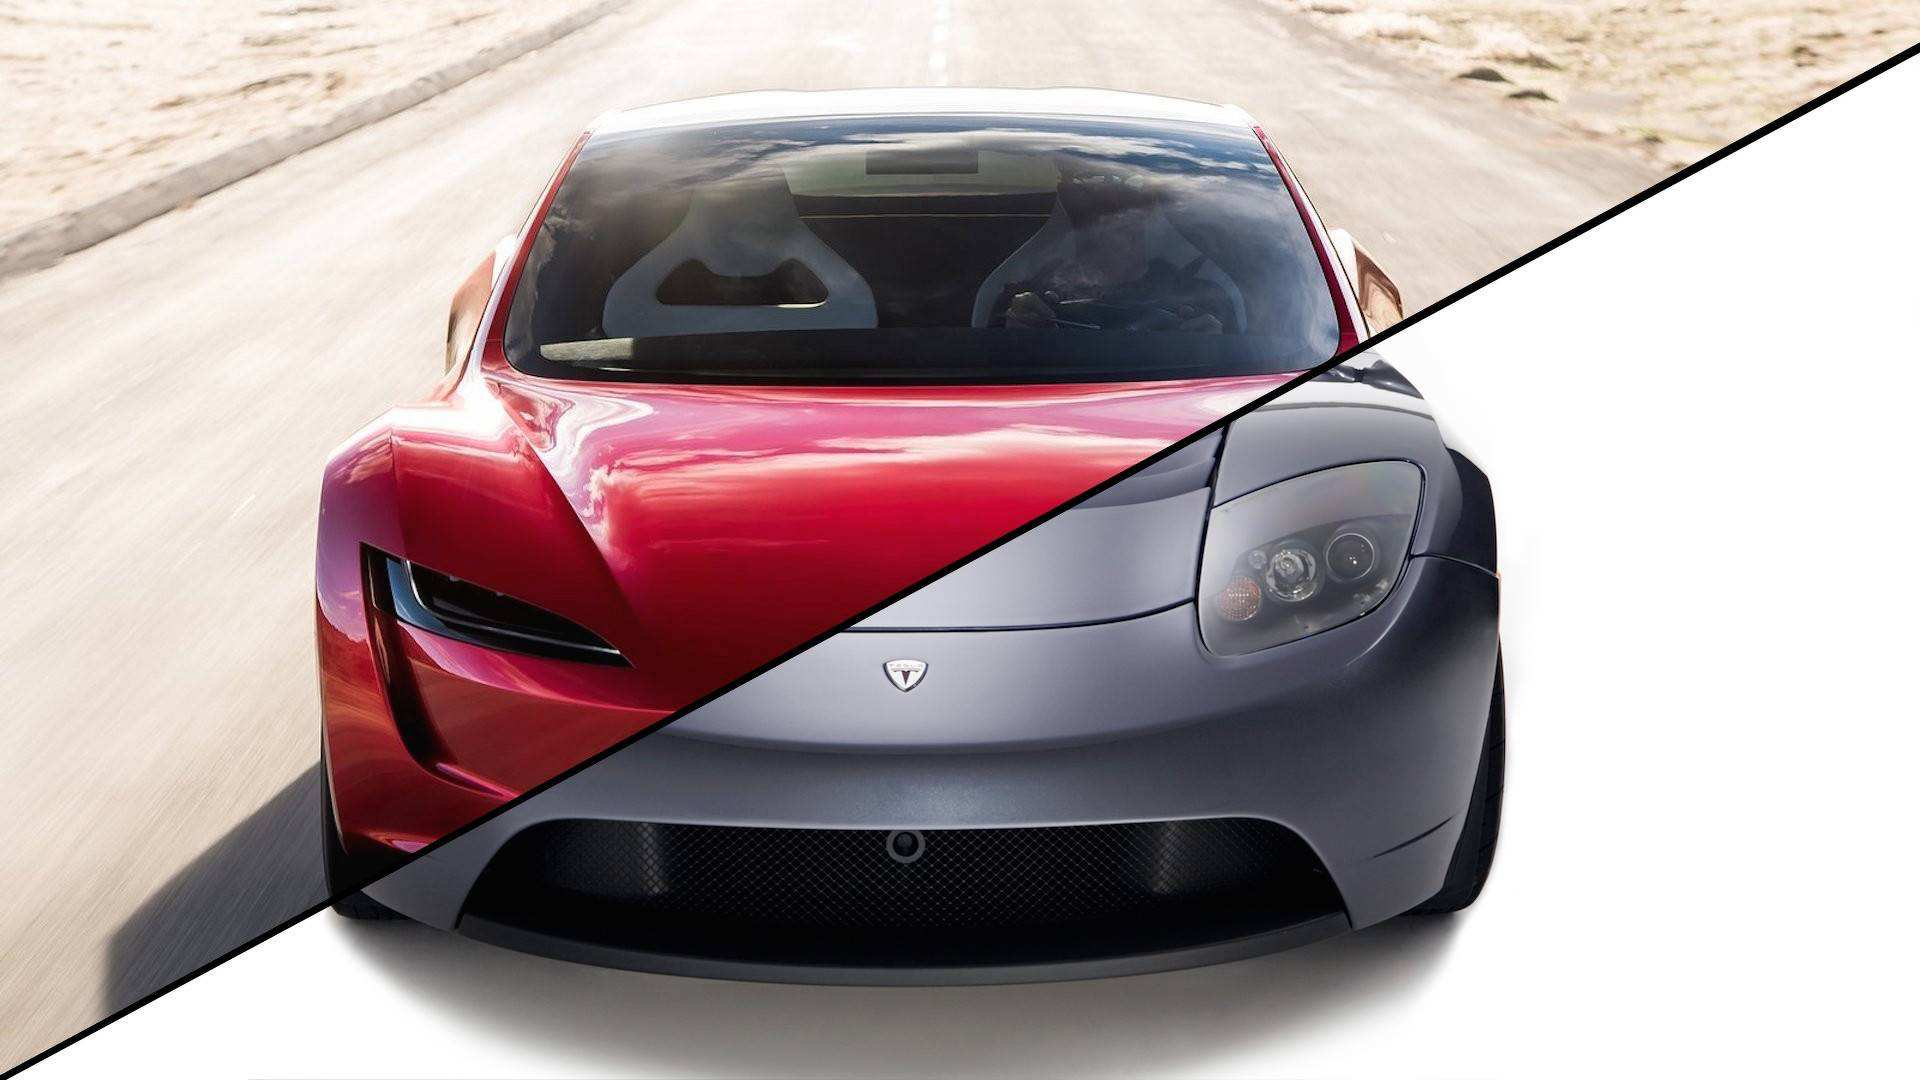 84 New 2020 Tesla Roadster Weight 2 Pricing by 2020 Tesla Roadster Weight 2